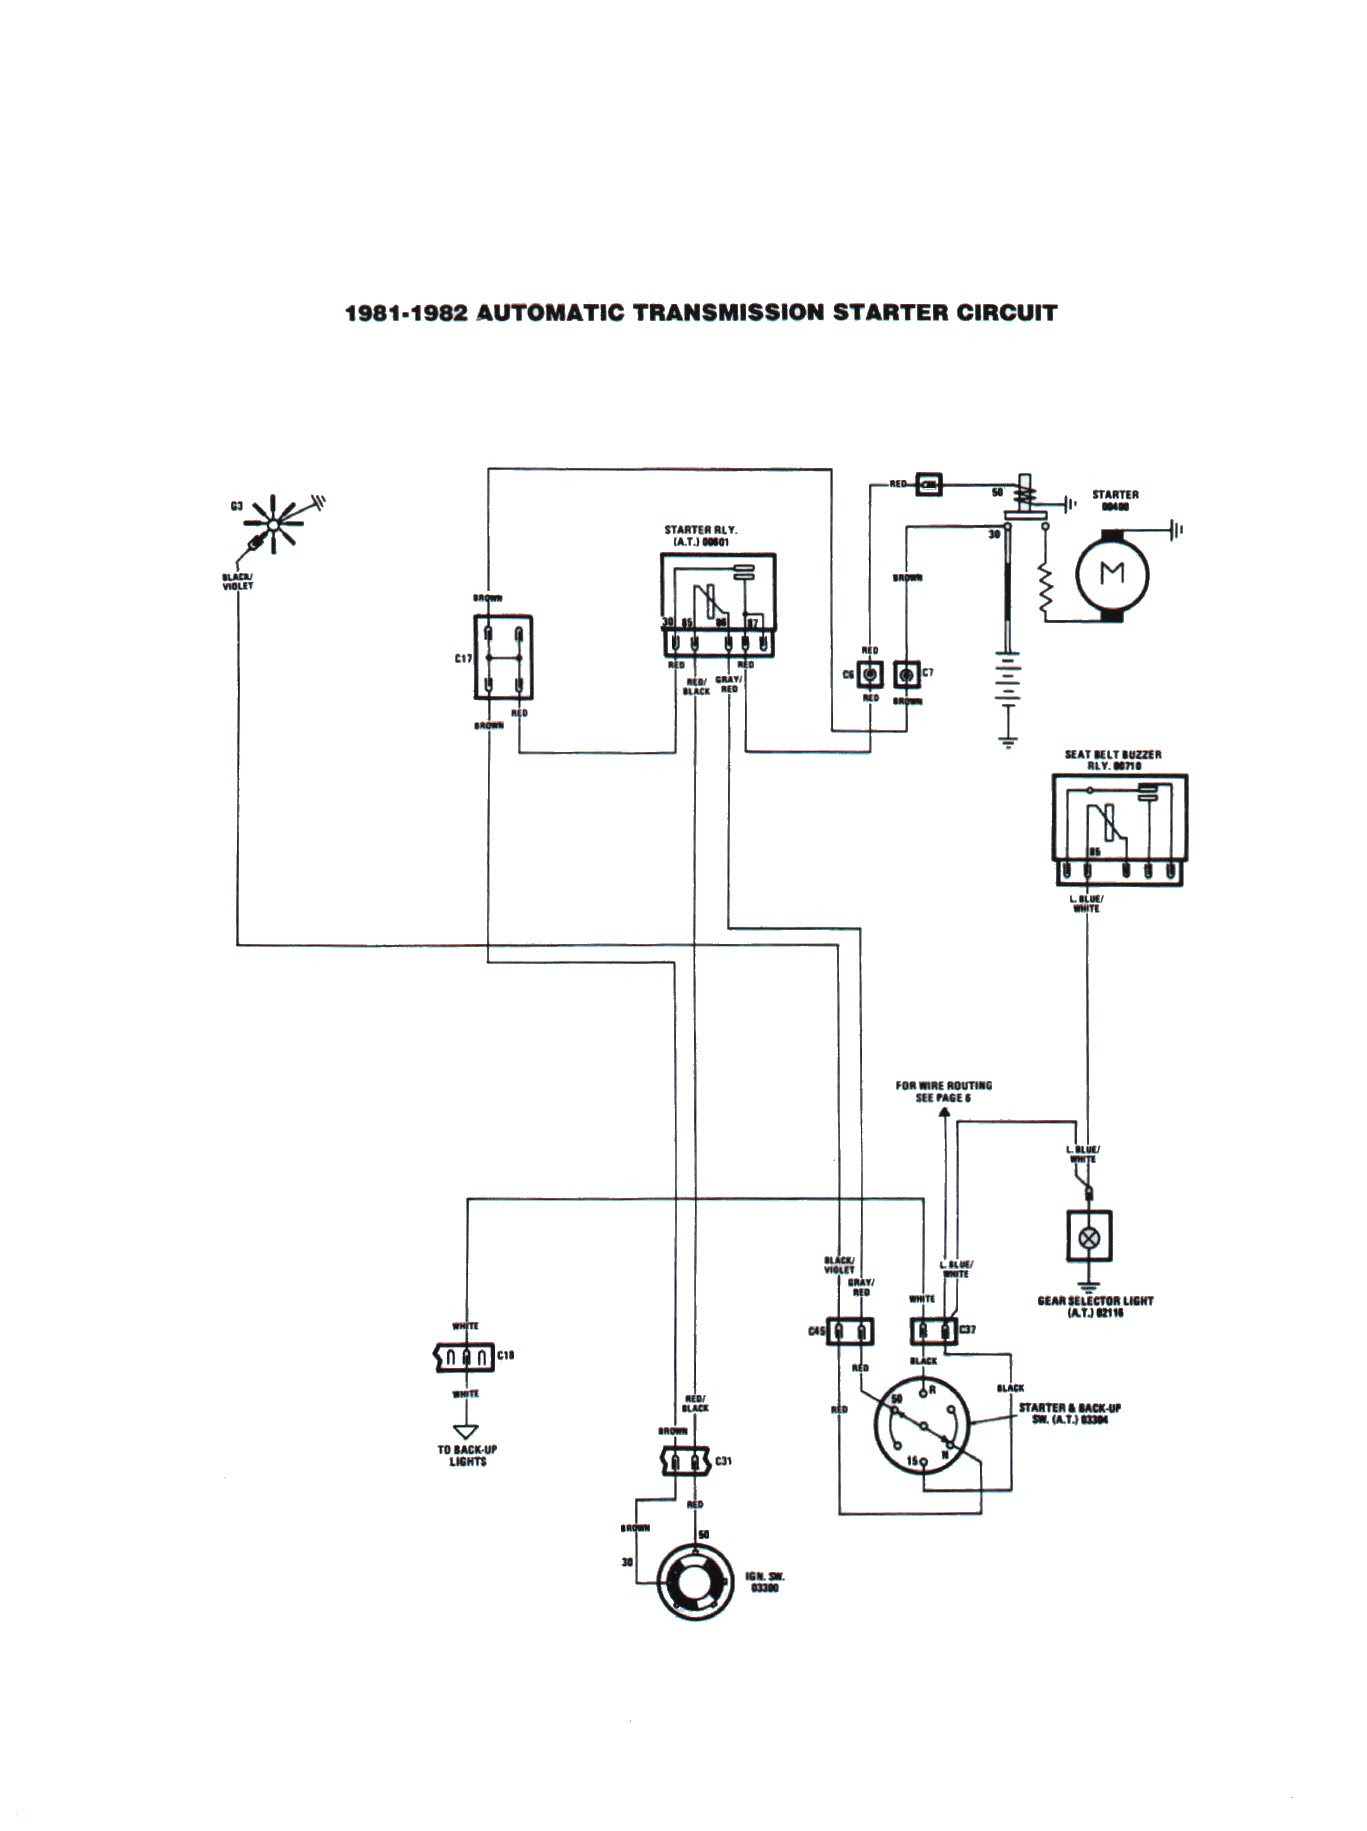 Fiat 124 Spider Spidersweb Nl On Repeated Request Electrical Schemes